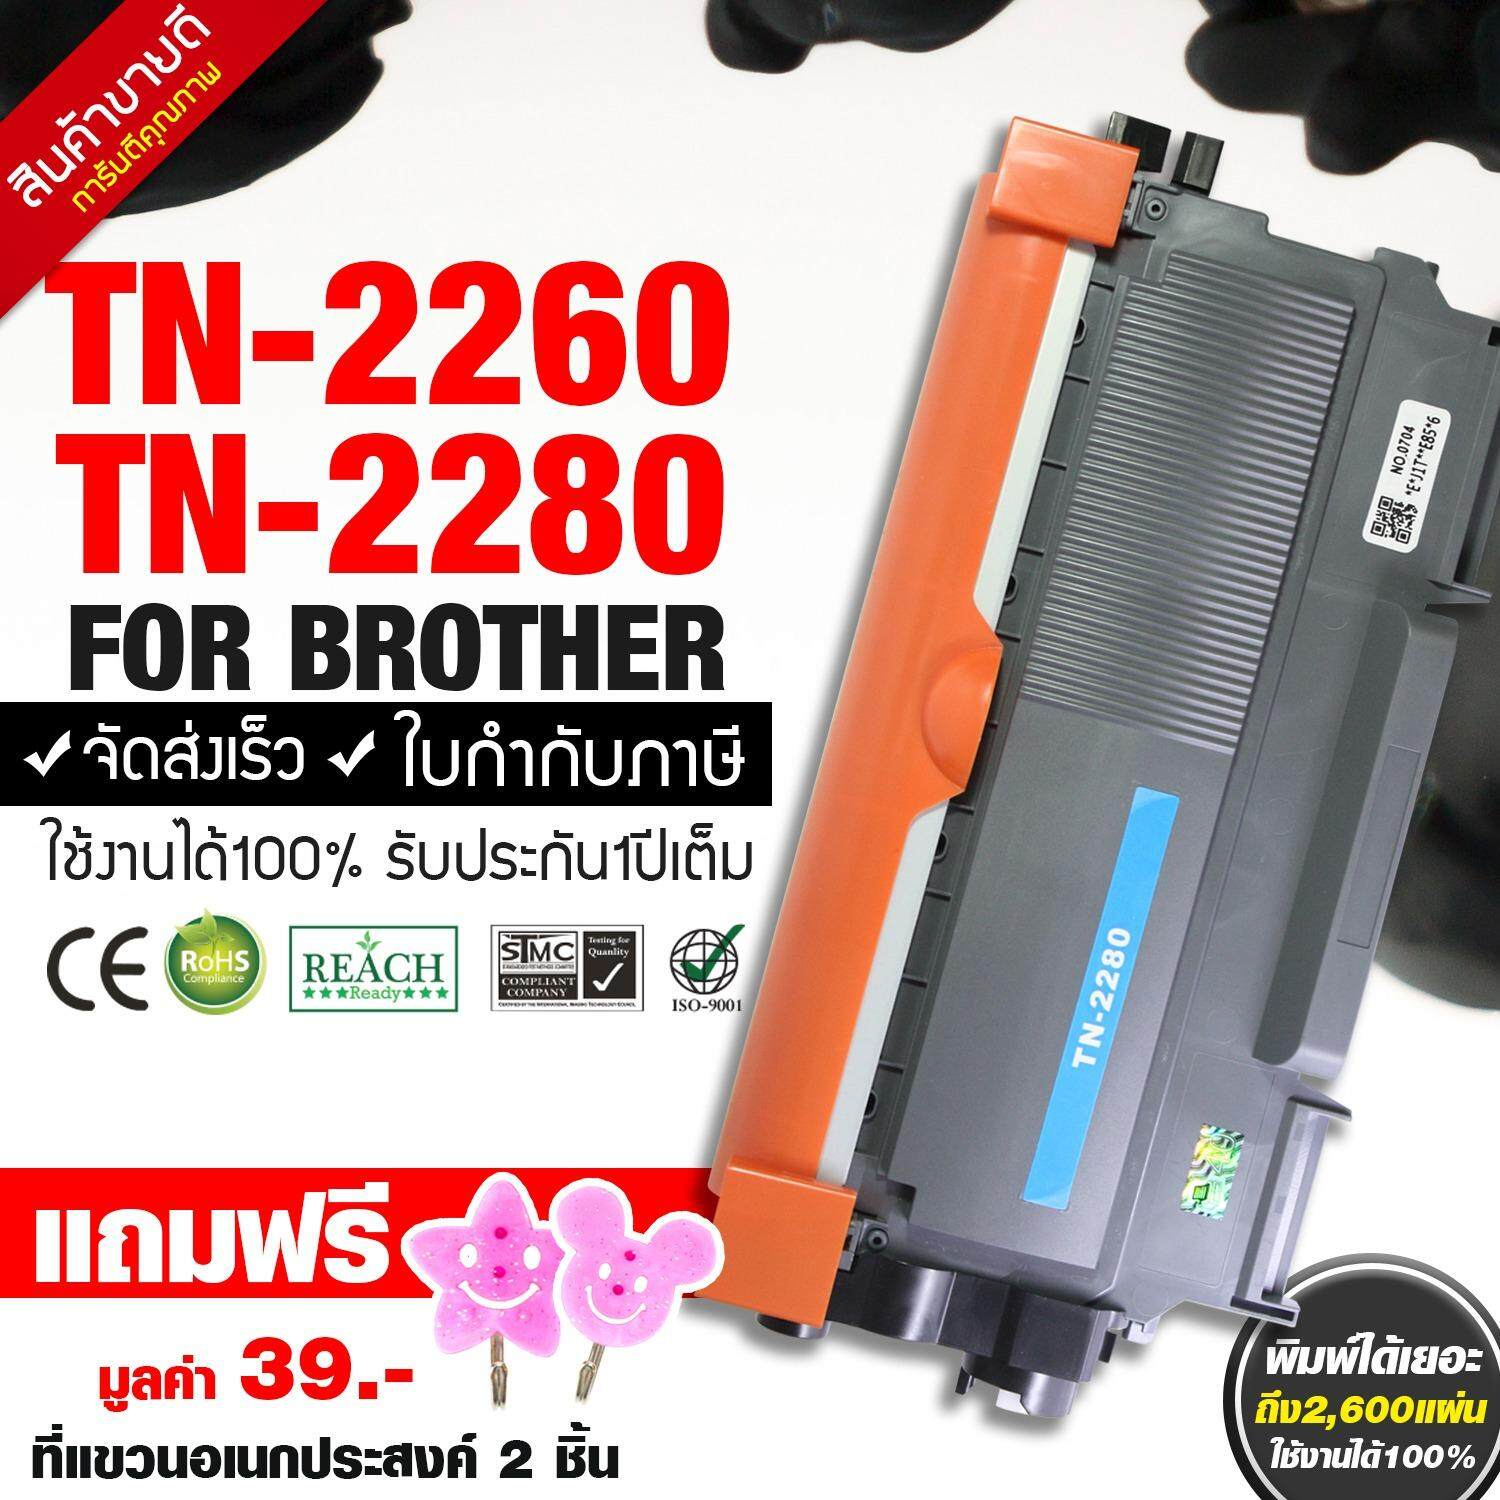 ส่วนลด หมึกพิมพ์ Brother Tn 2260 Tn 2280 For Brother Hl 2130 2240D 2242D 2250Dn 2270Dw Dcp 7055 4060D 7065 Dn Mfc 7240 7360N 7362 7460N 7470Dn 7470D 7860Dw Black Box Toner Black Box Toner กรุงเทพมหานคร